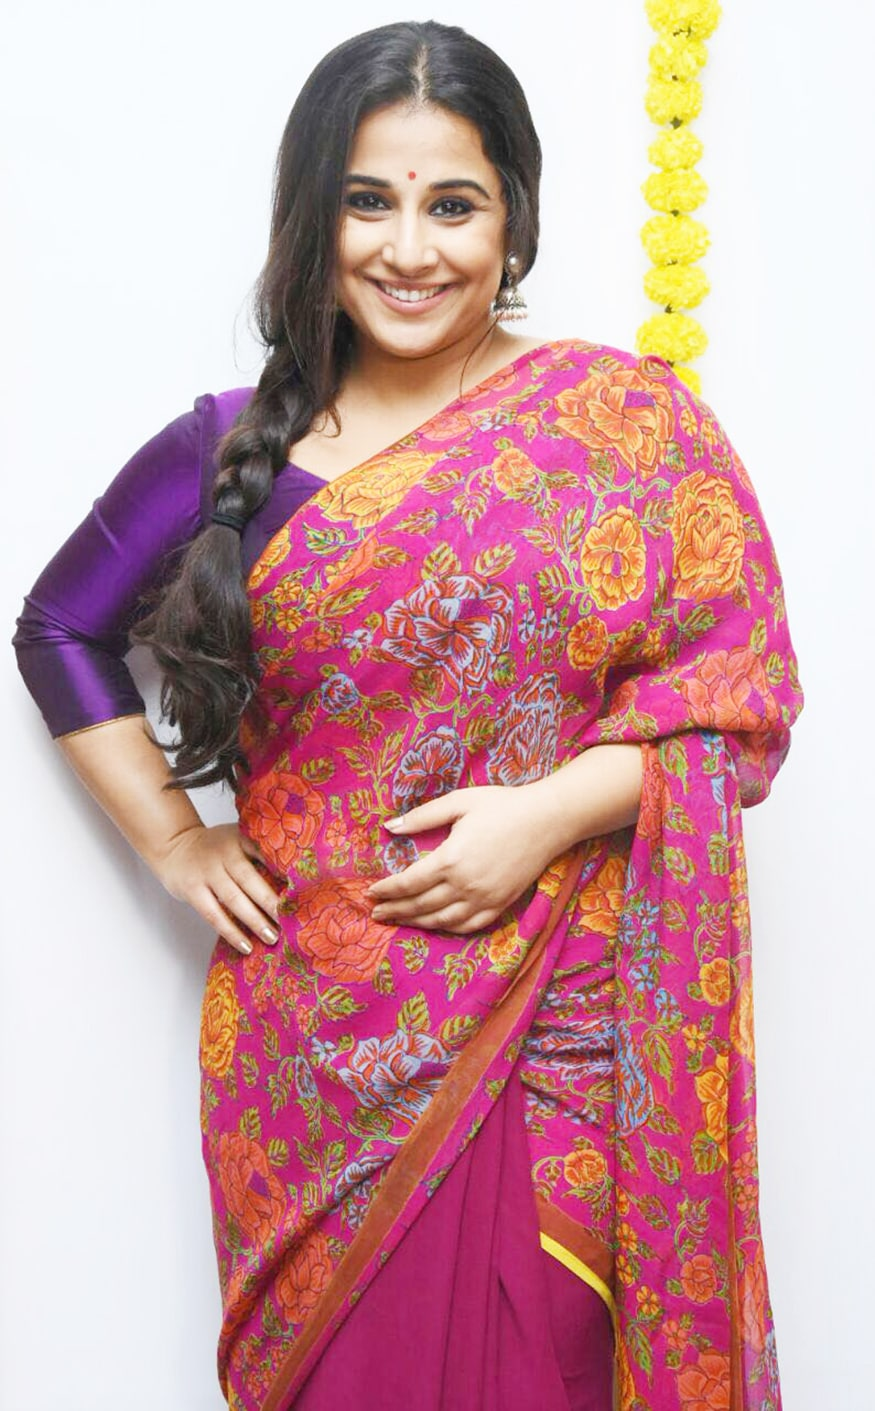 Vidya Balan at Tumhari Sulu success party